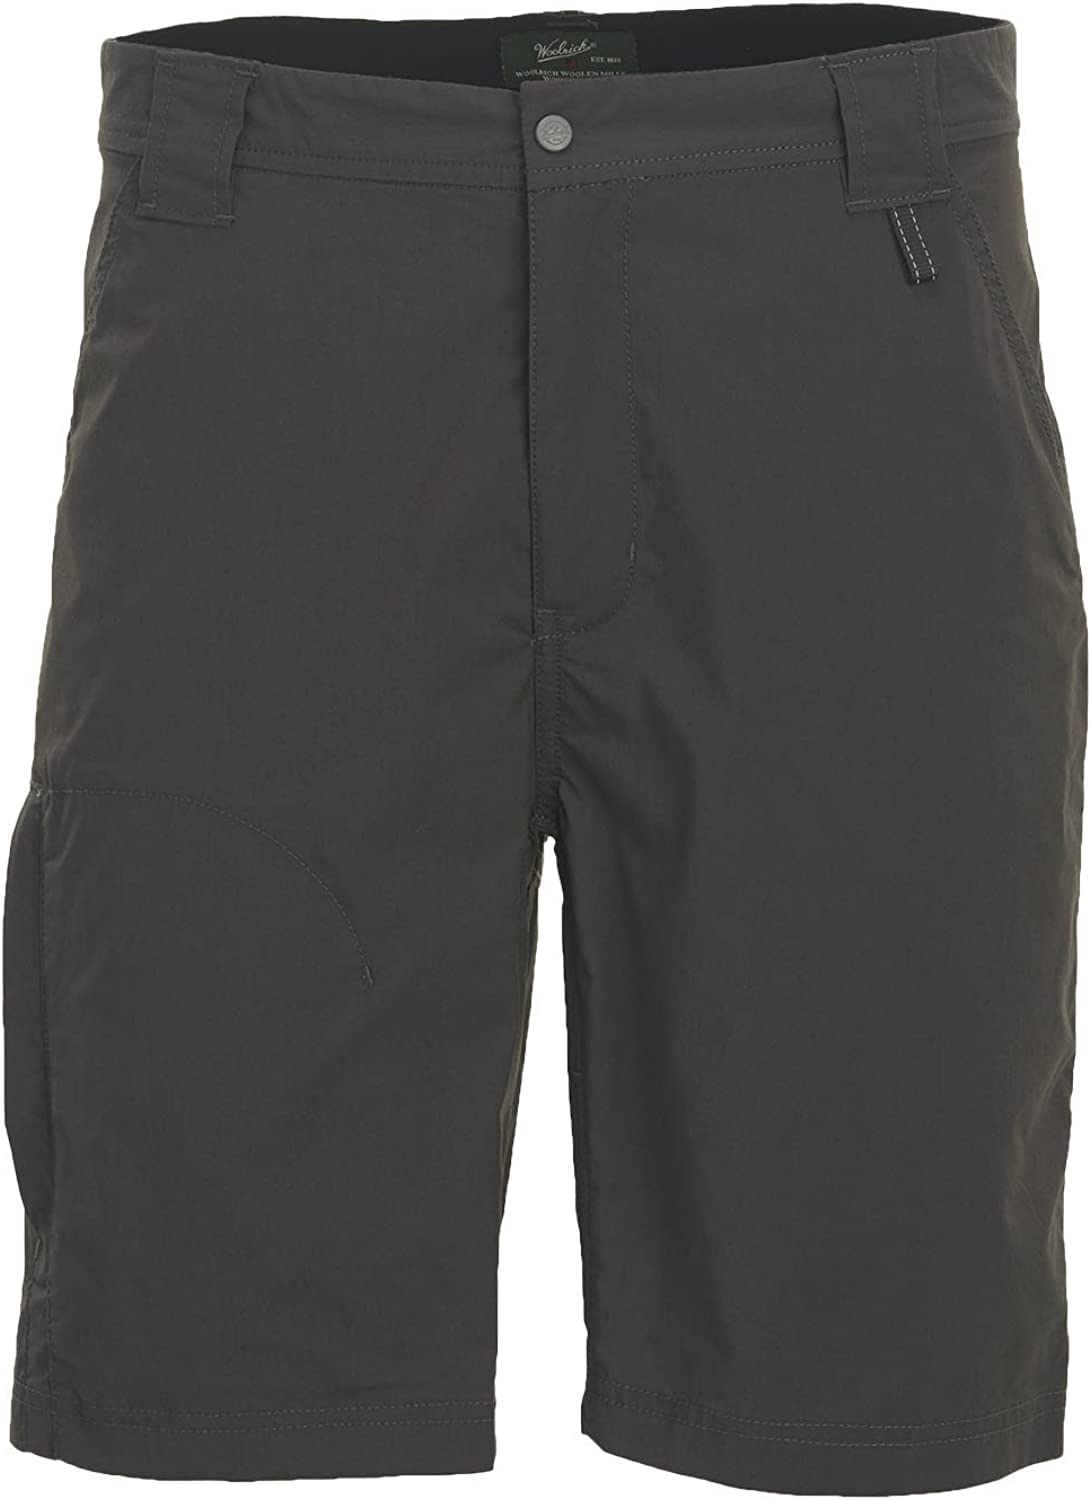 Woolrich Men's Outdoor Modern Fit Short